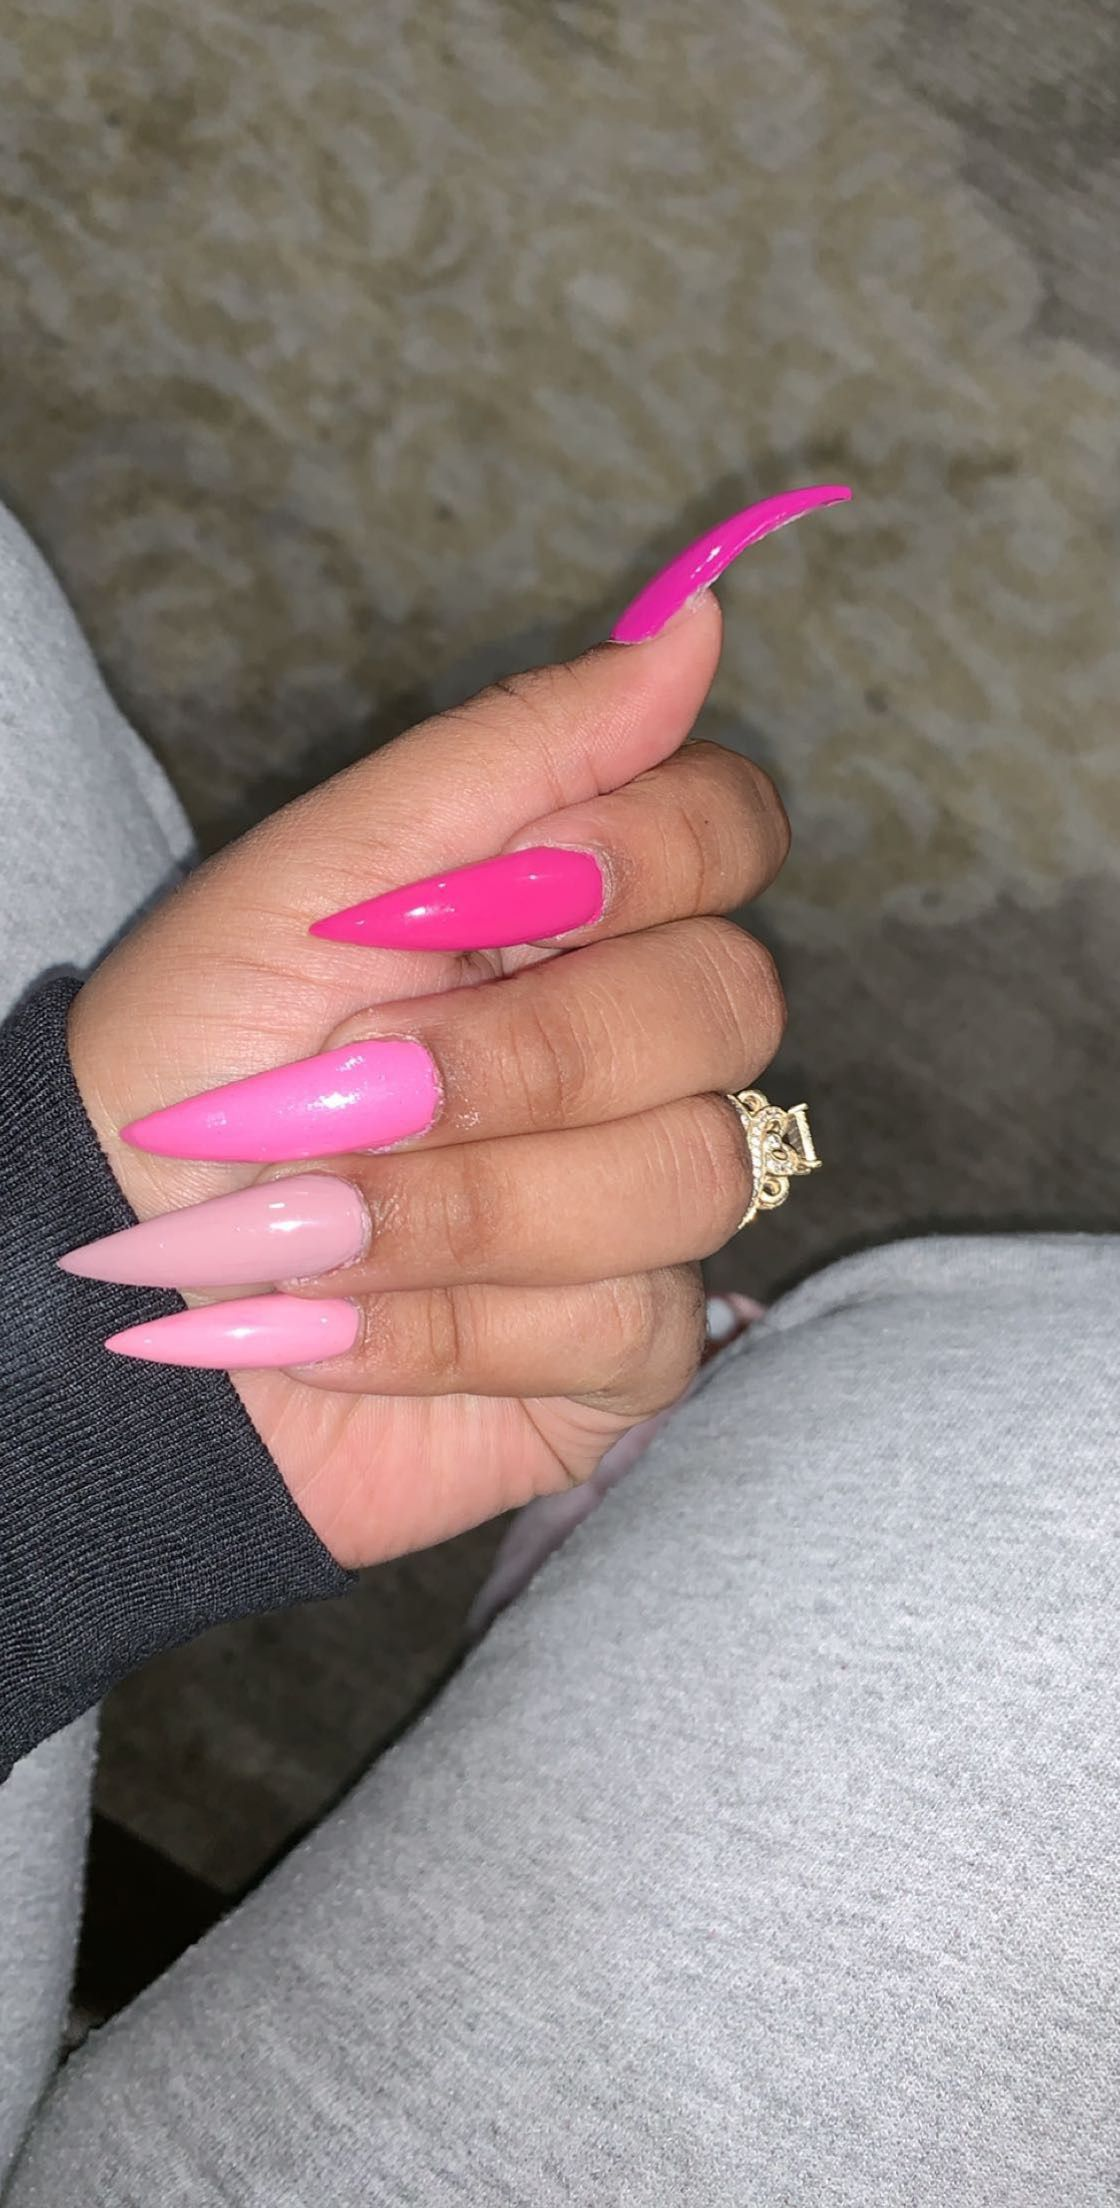 Acrylic Nails Long Stiletto Pink Brebraxkin On Insta With